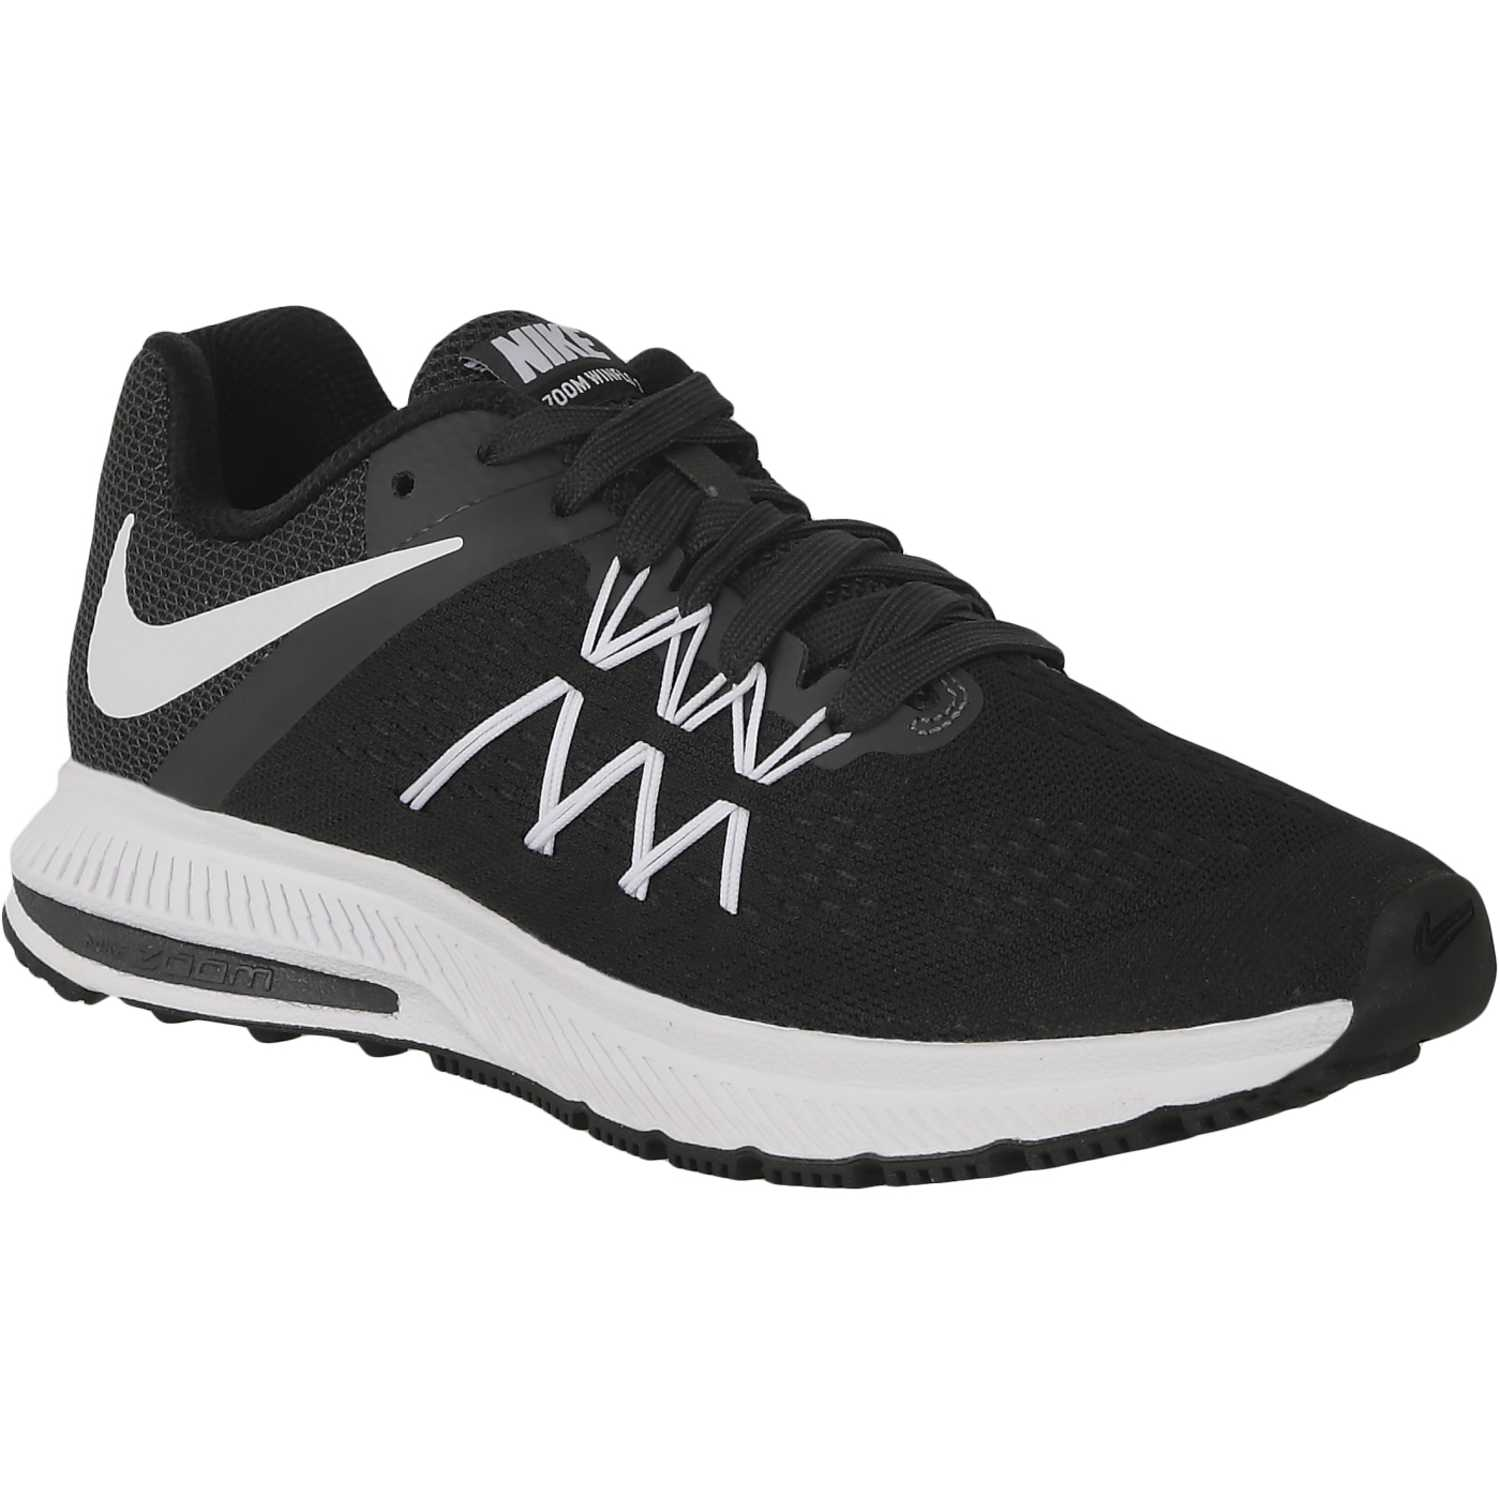 low priced ee82d 3be42 Zapatilla de Mujer Nike Negro   Blanco wmns zoom winflo 3